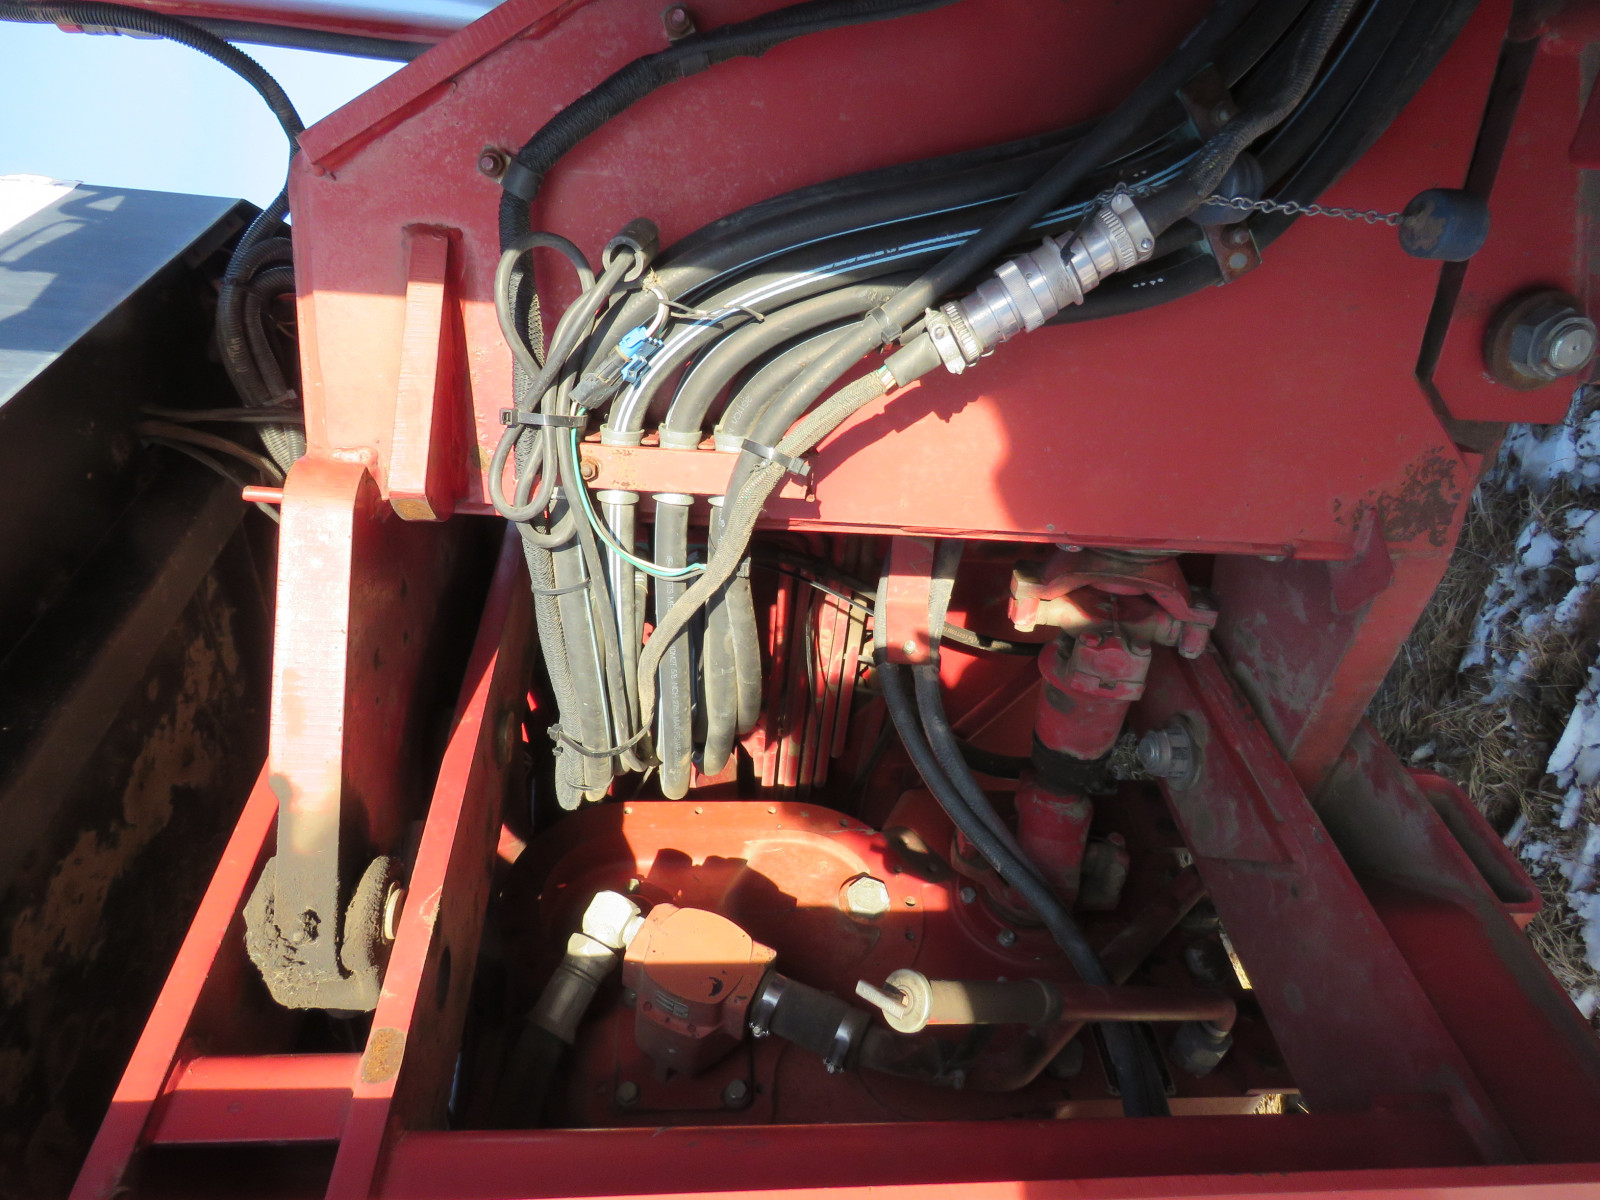 CASE-IH 1991 9270 4WD Tractor JCB0026904 - Image 7